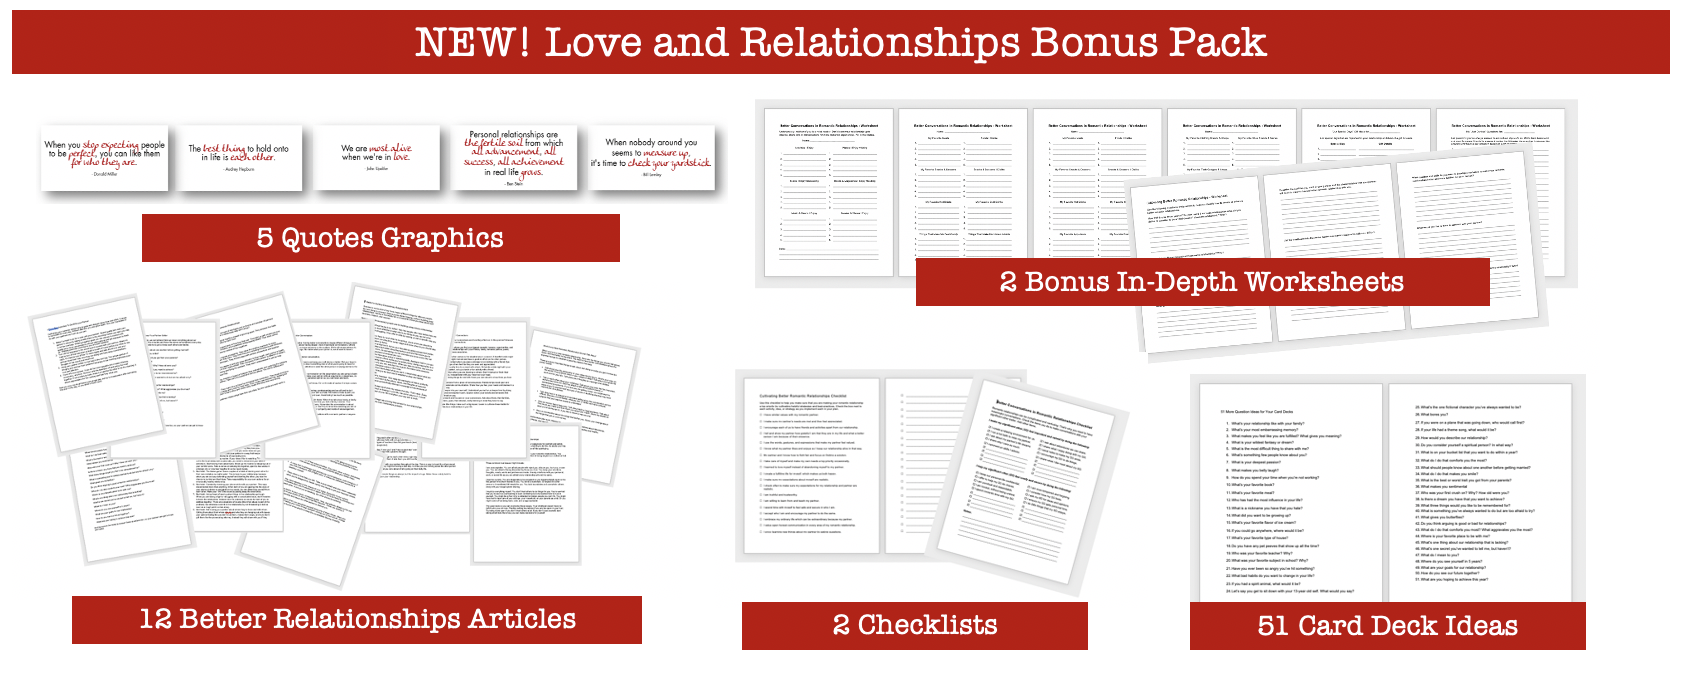 Love and Relationships Bonus Pack